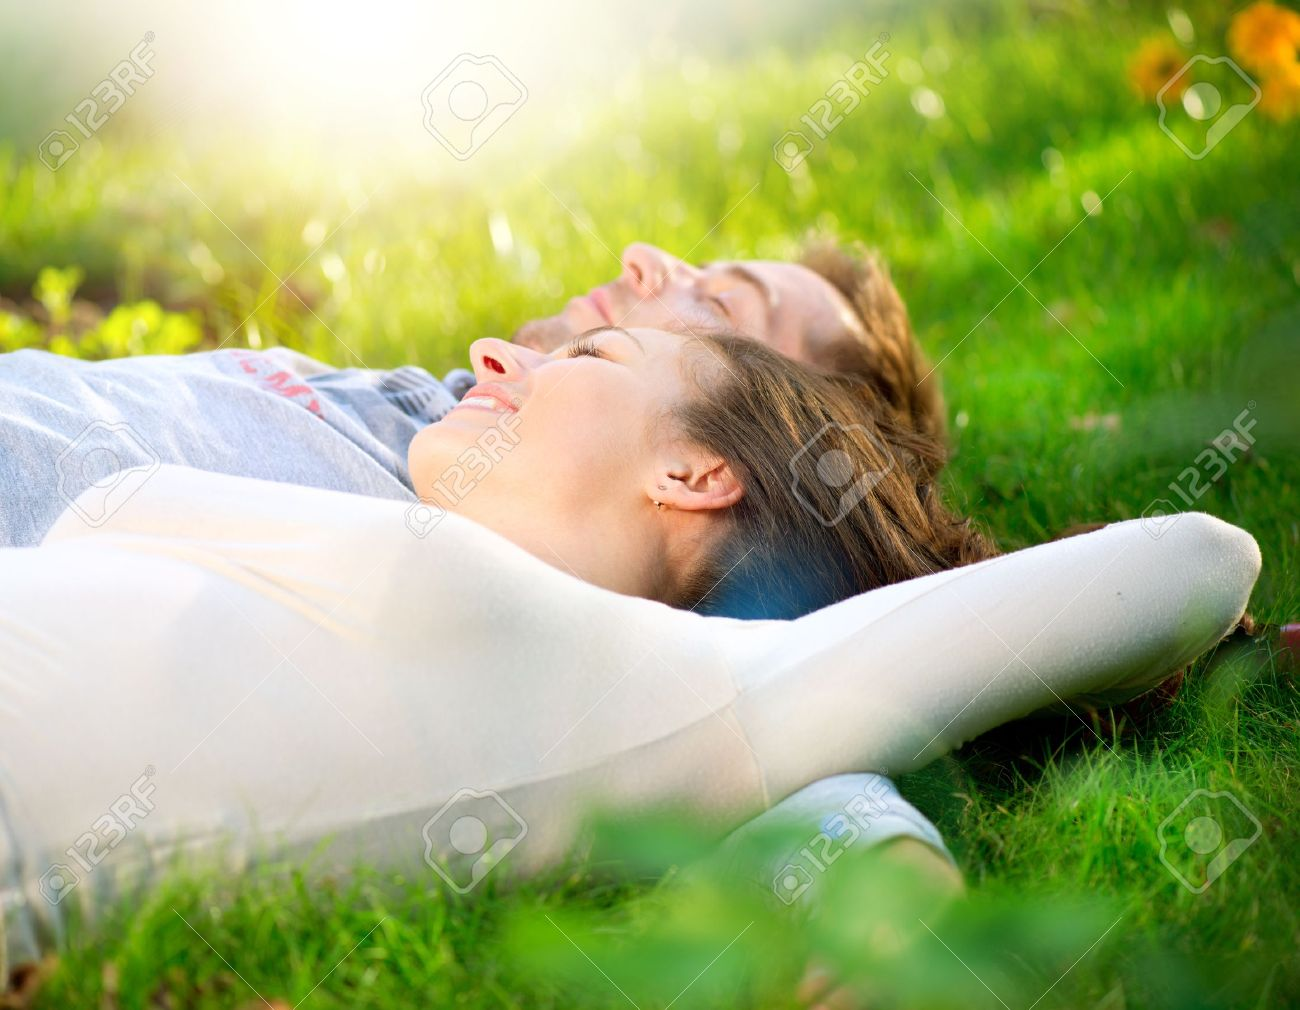 Young Couple Lying on Grass Outdoor Stock Photo - 15658051